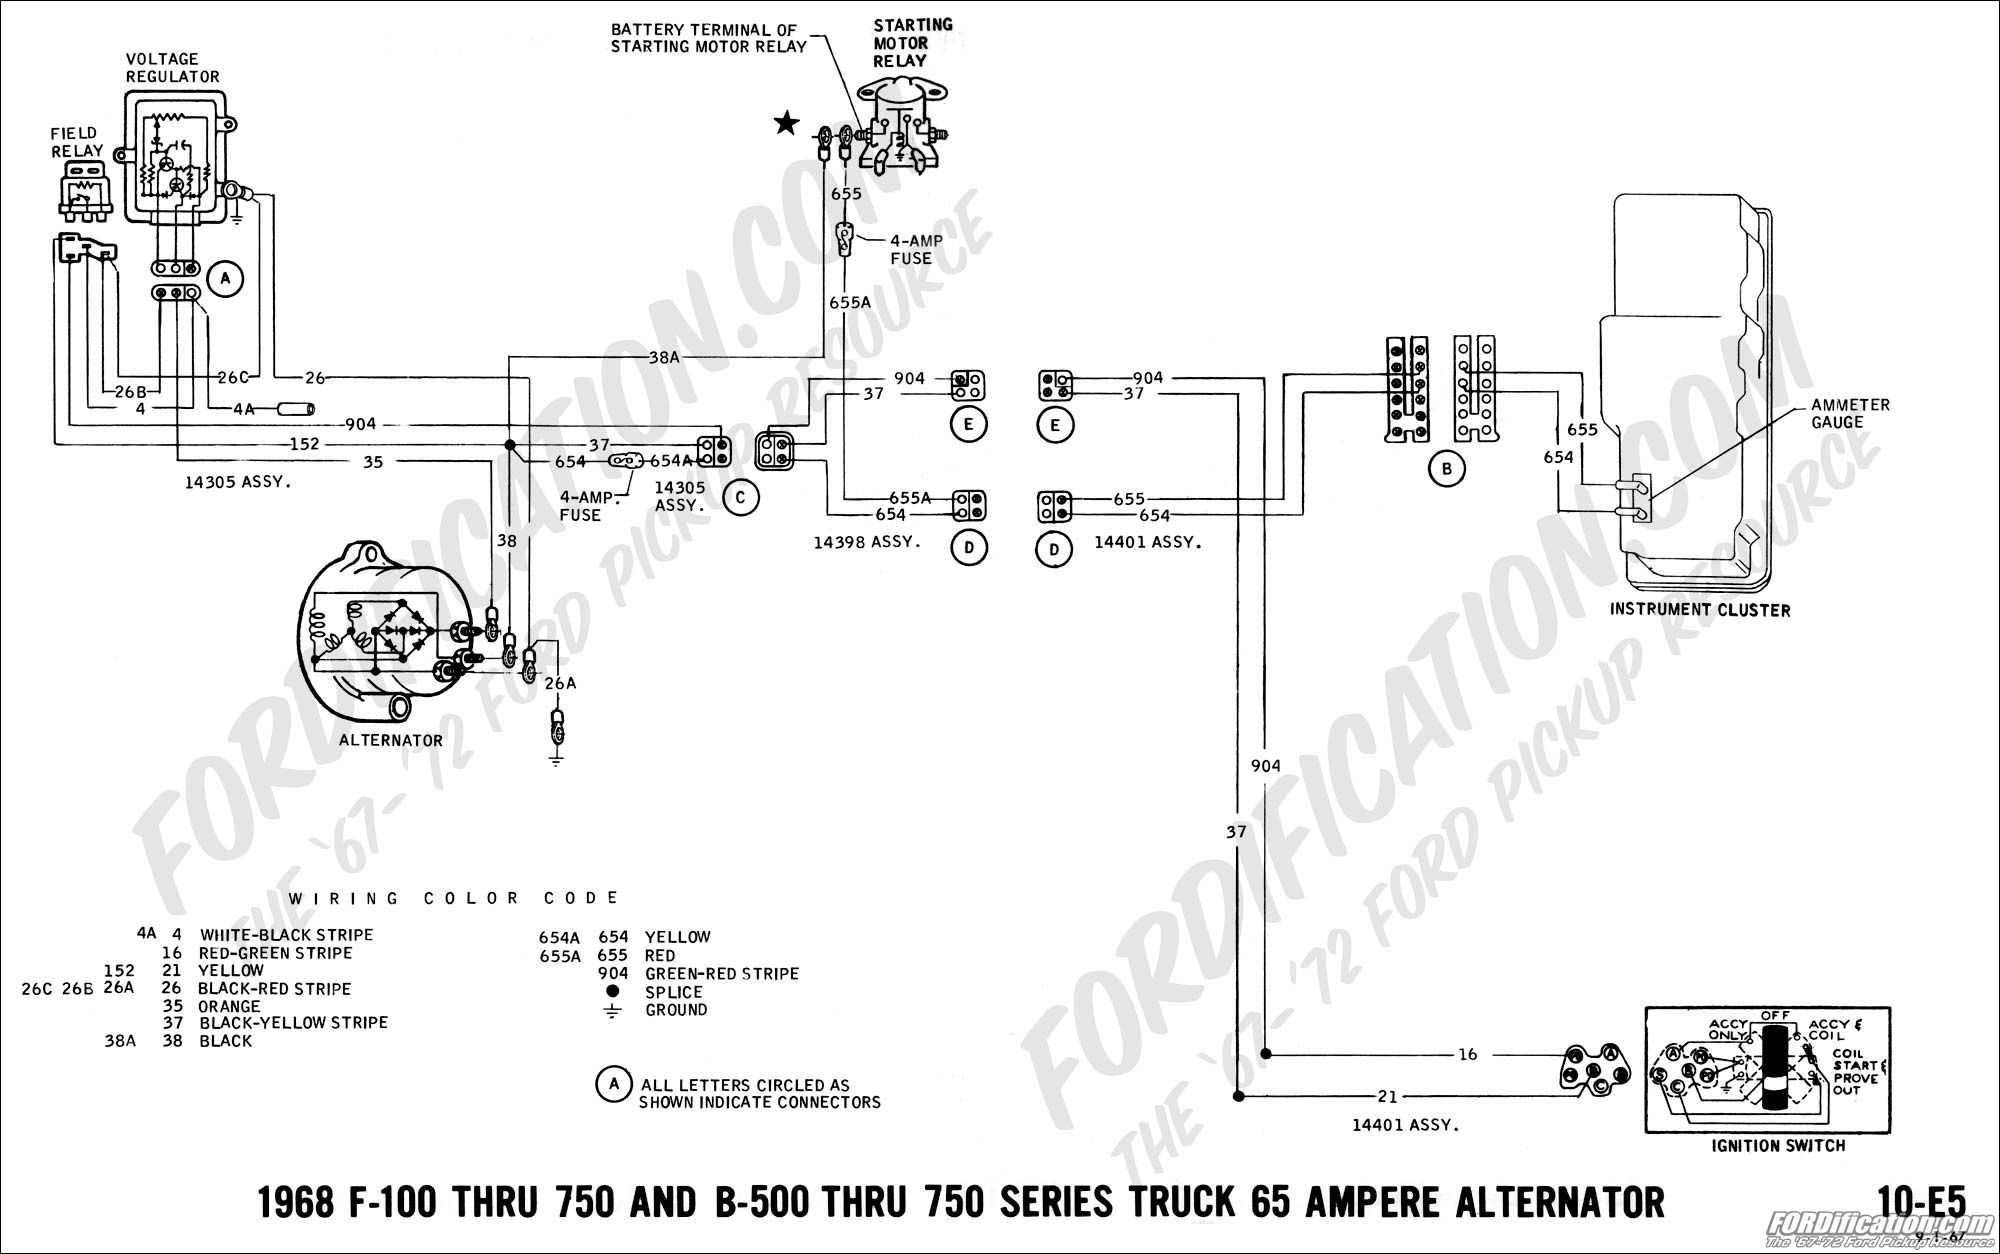 diagram] 1973 ford f100 alternator diagram wiring schematic full version hd  quality wiring schematic - cabletypes.lexanesirac.fr  cabletypes.lexanesirac.fr